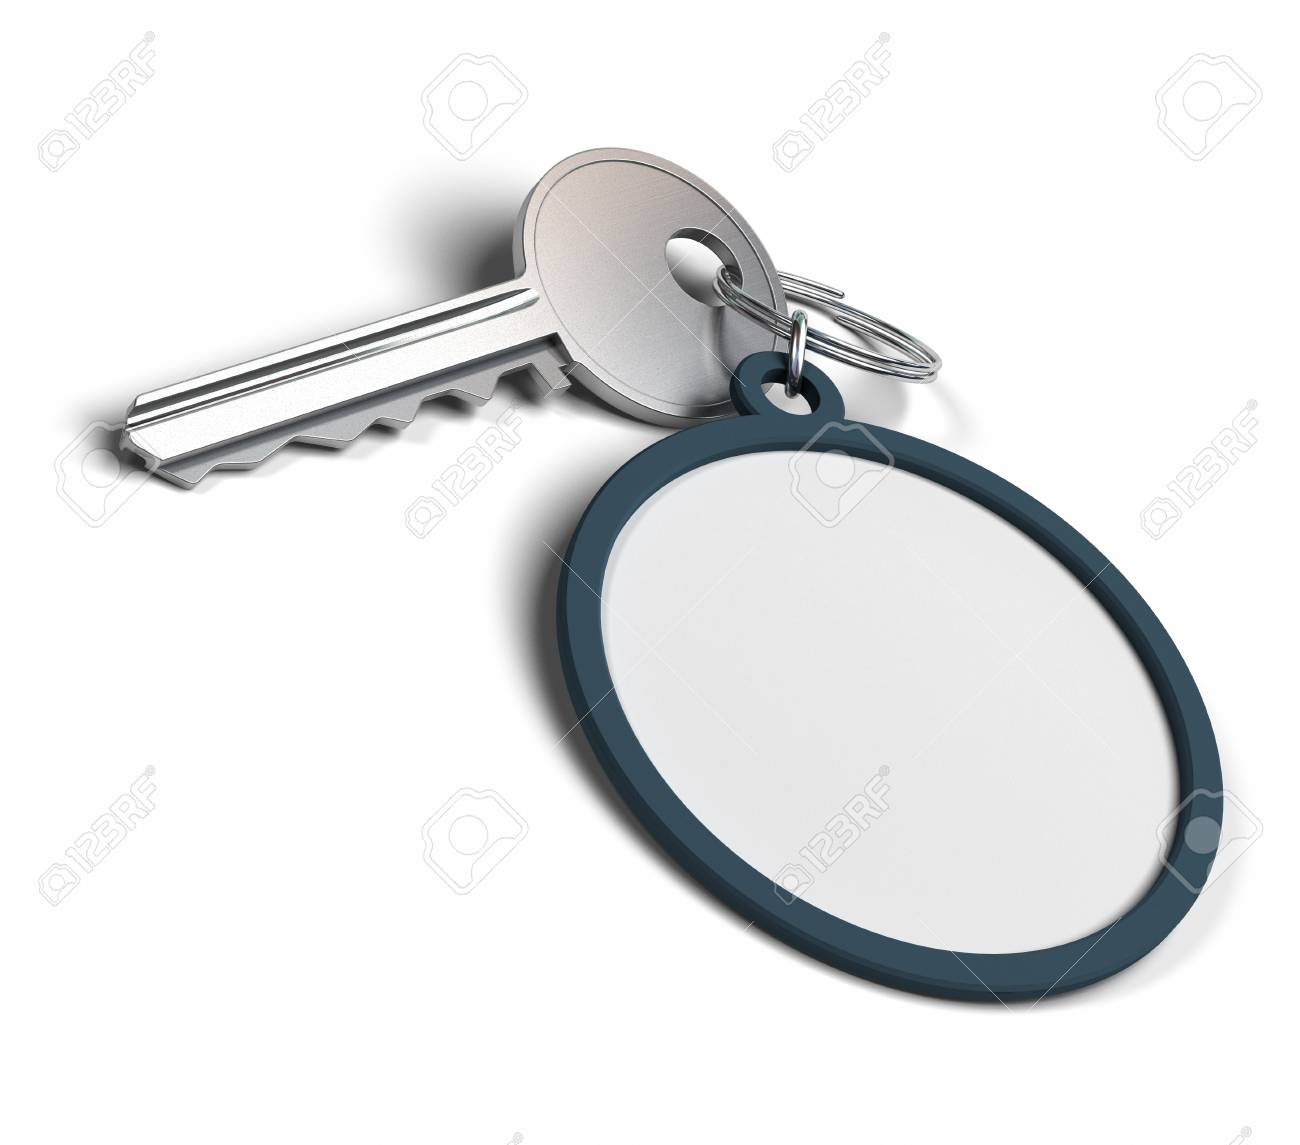 keyring over a white background with copy space for message or communication Stock Photo - 8804157